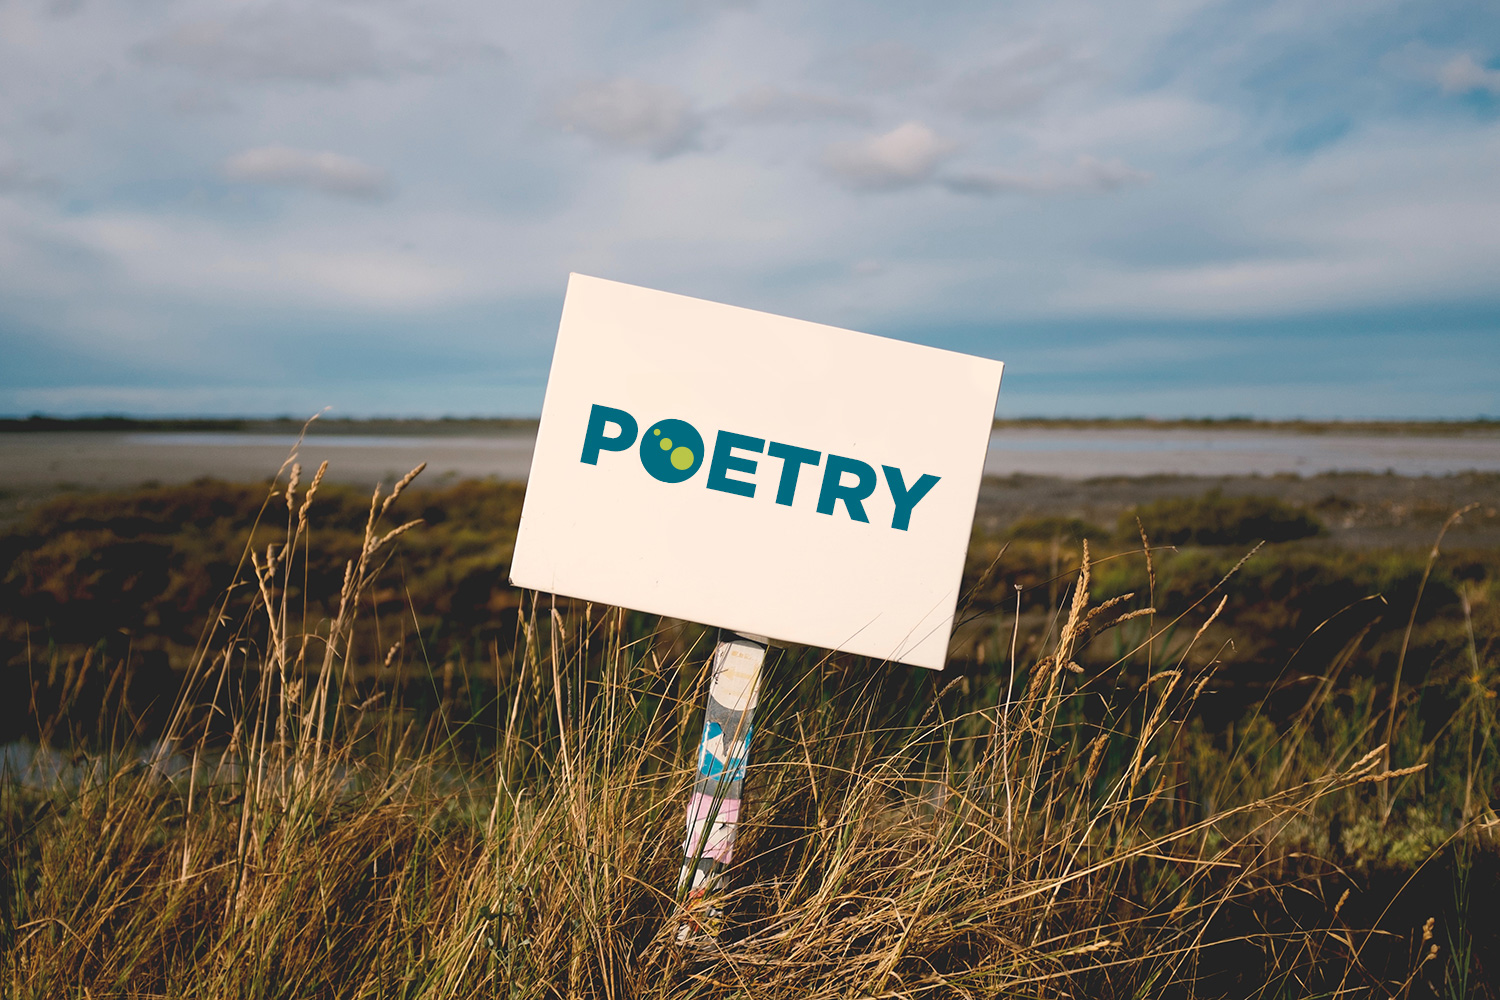 umberto-22SYb0D0ens-unsplash-poetry-sign.jpg